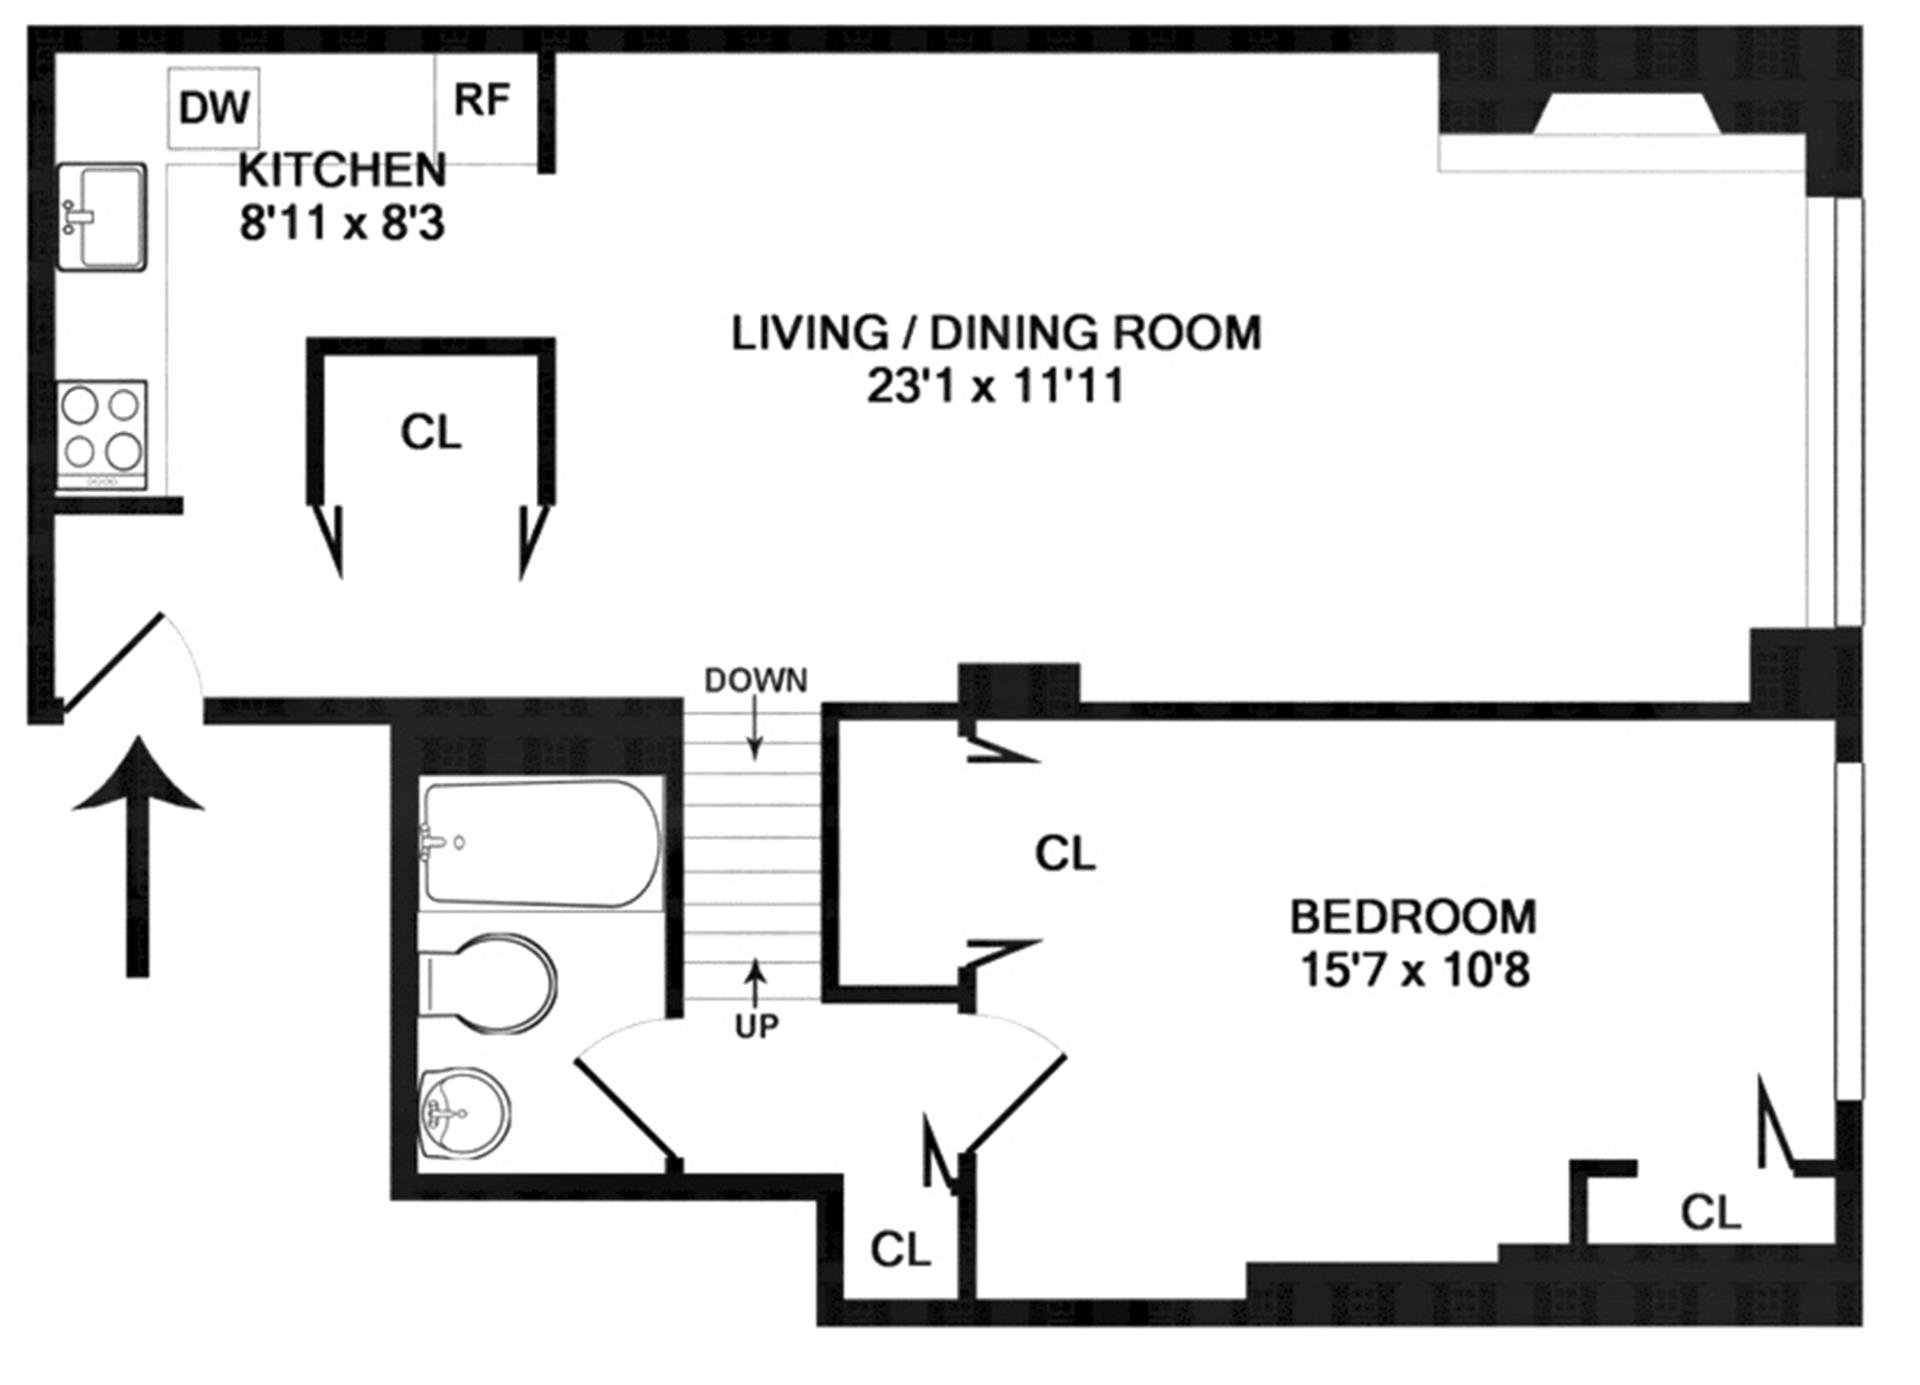 Floor plan of THE ANTOINETTE, 7 East 35th St, 1C - Murray Hill, New York